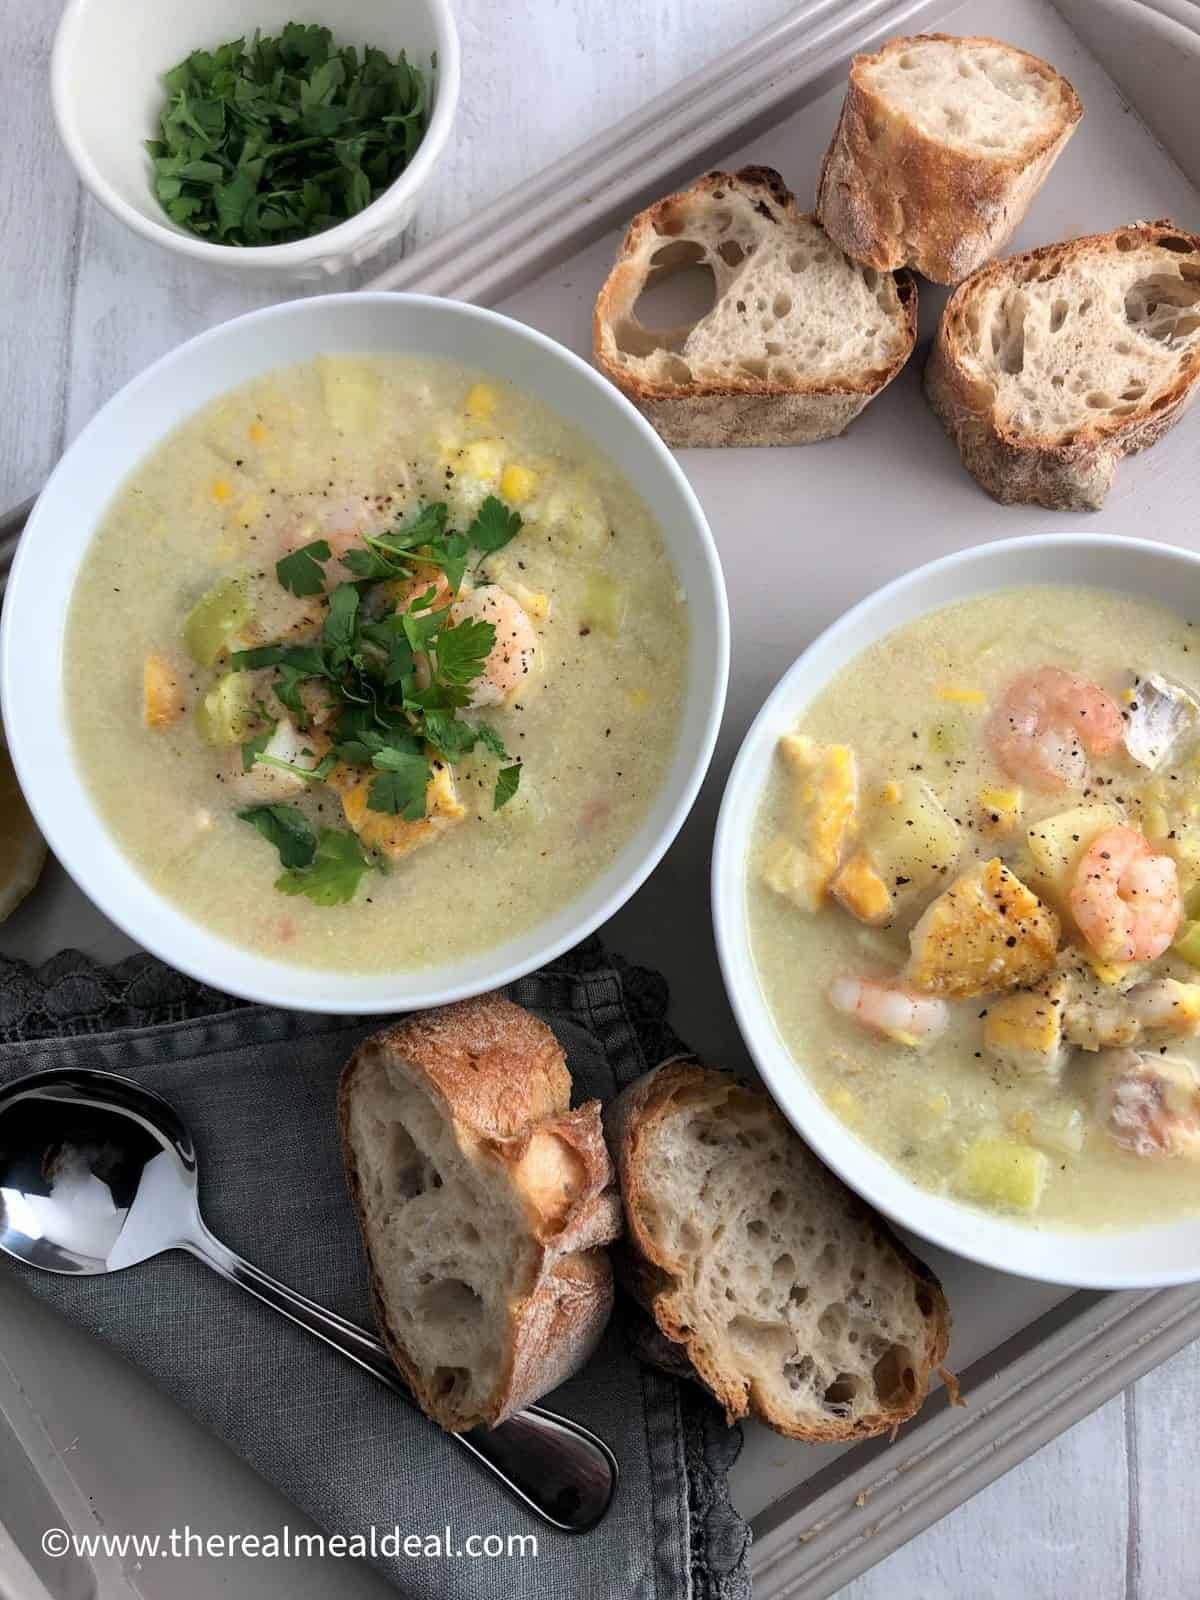 two bowls of smoked haddock and prawn chowder on a tray with sliced baguette